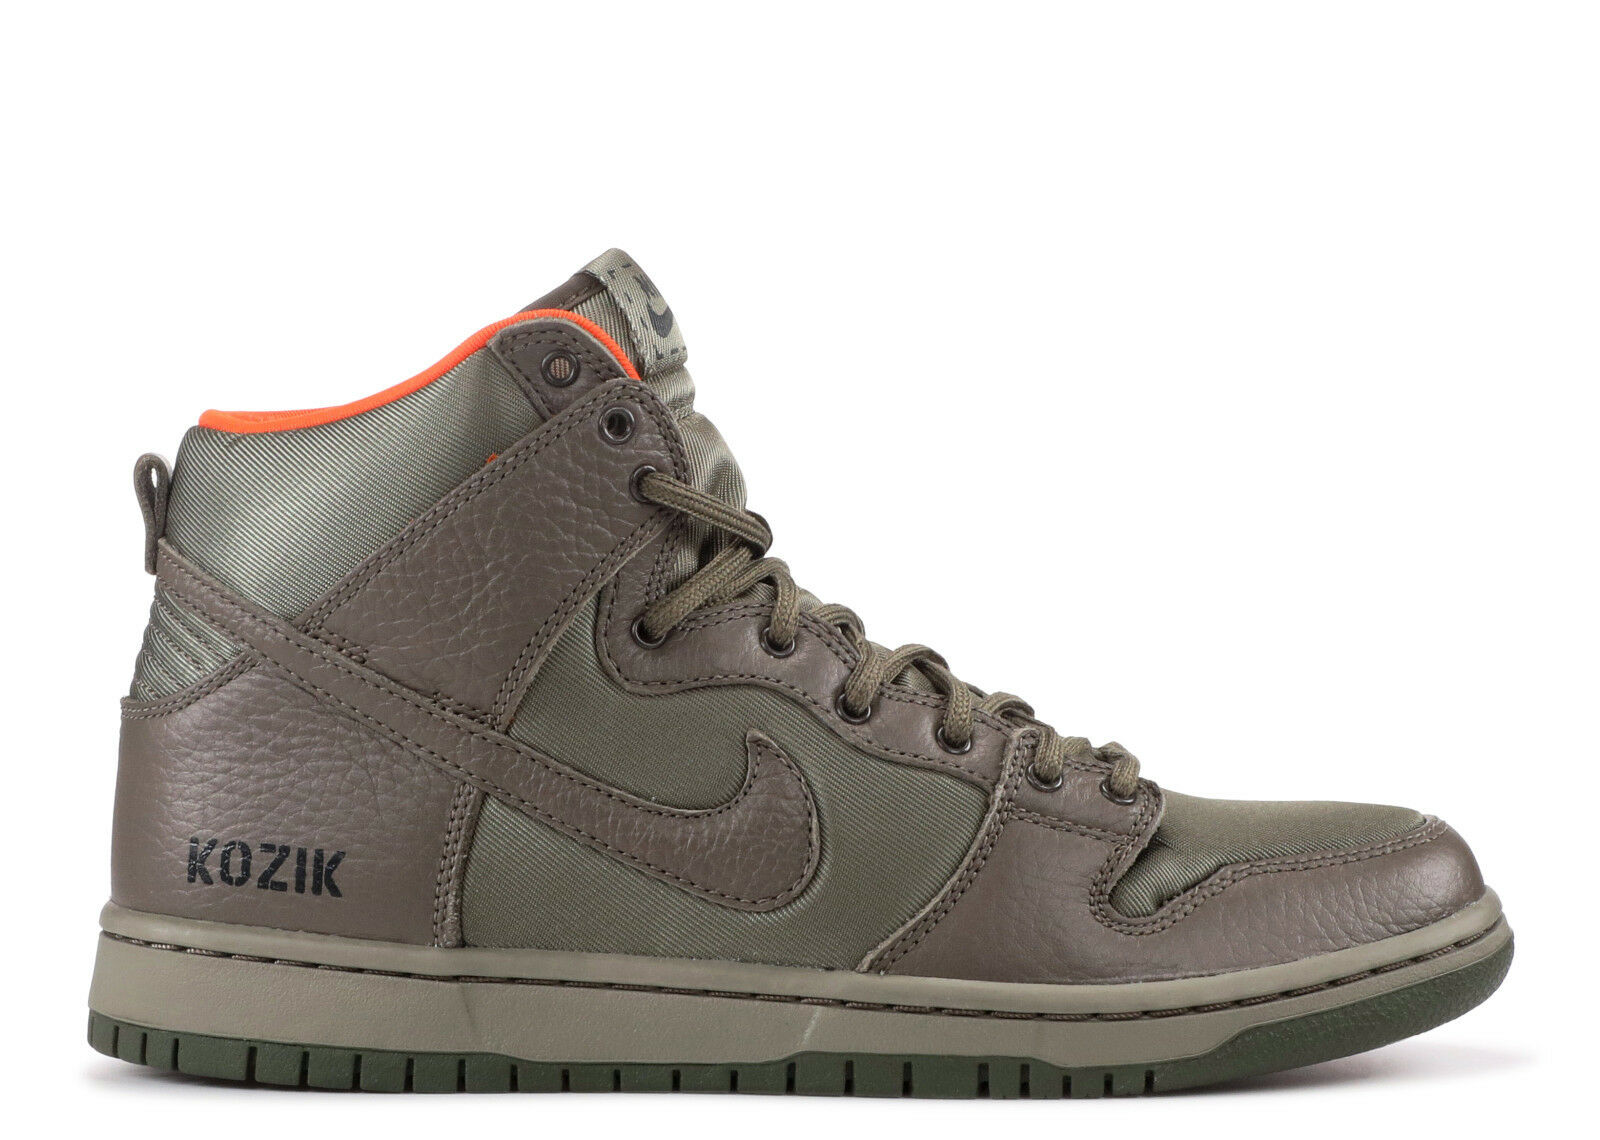 Brand New Dunk High-Top Pro -  Kozik's  Deadstock Size 10.5 - 313171 328